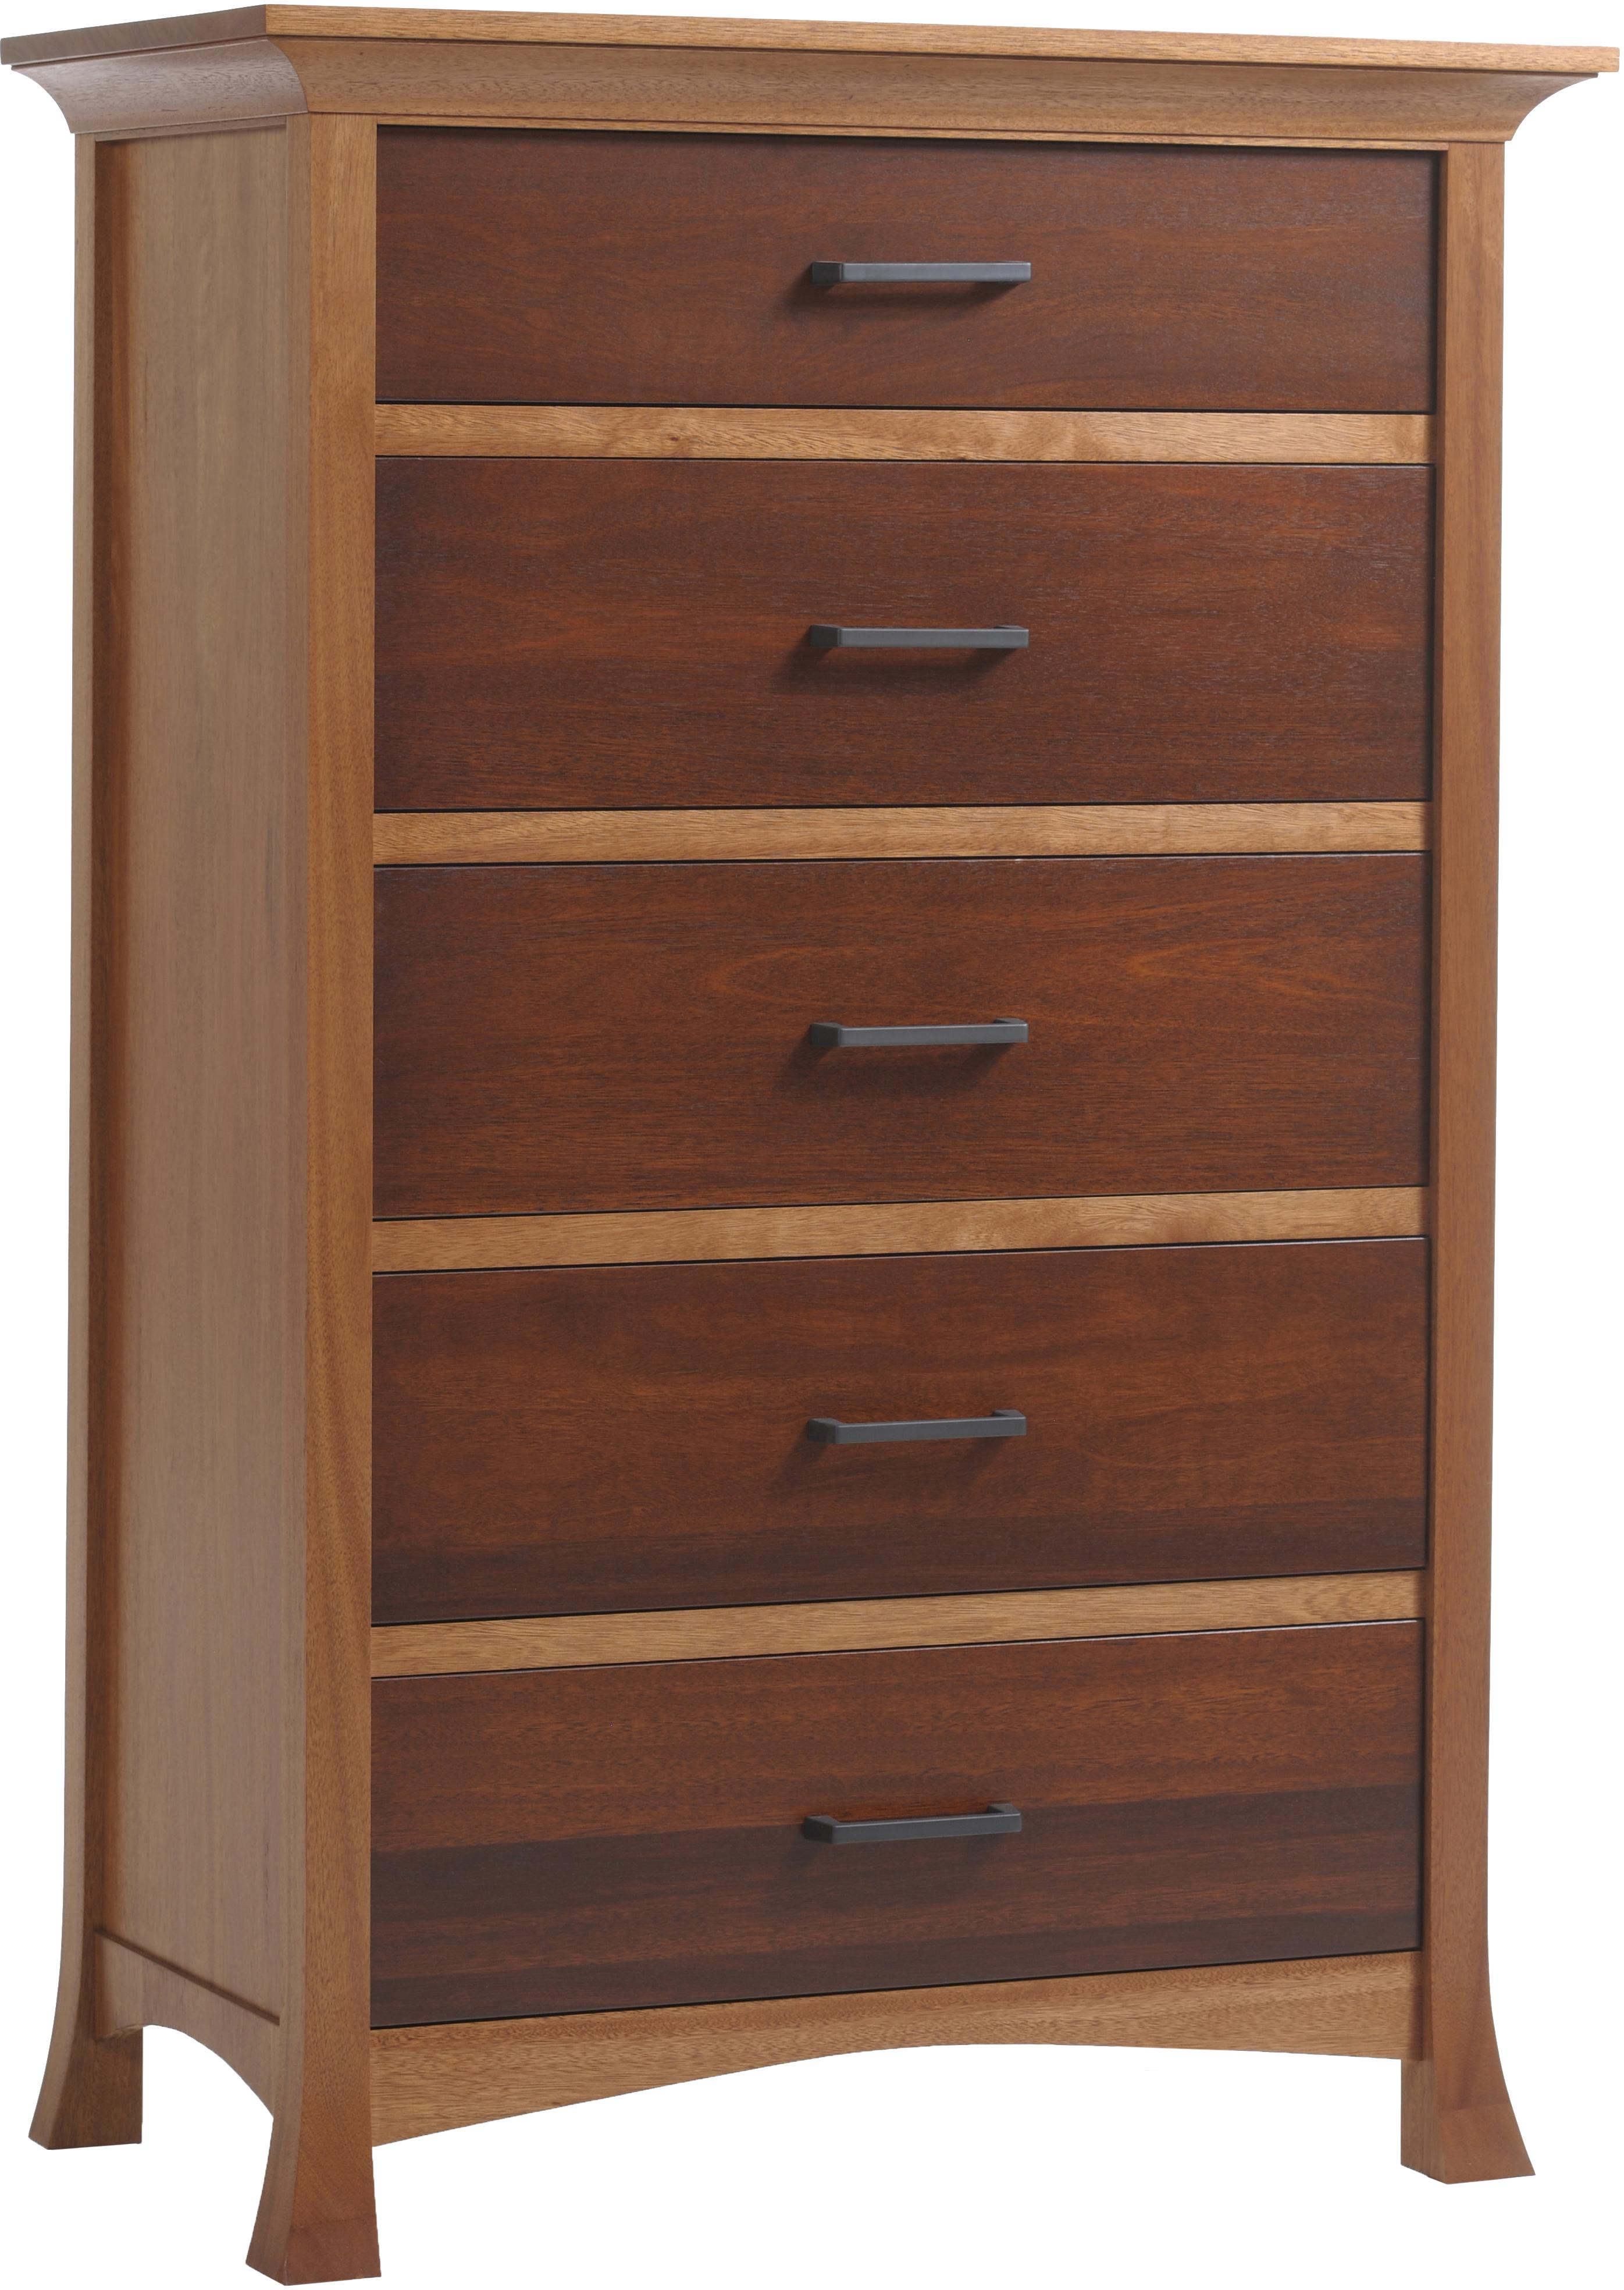 Oasis Chest of Drawers by Millcraft at Saugerties Furniture Mart